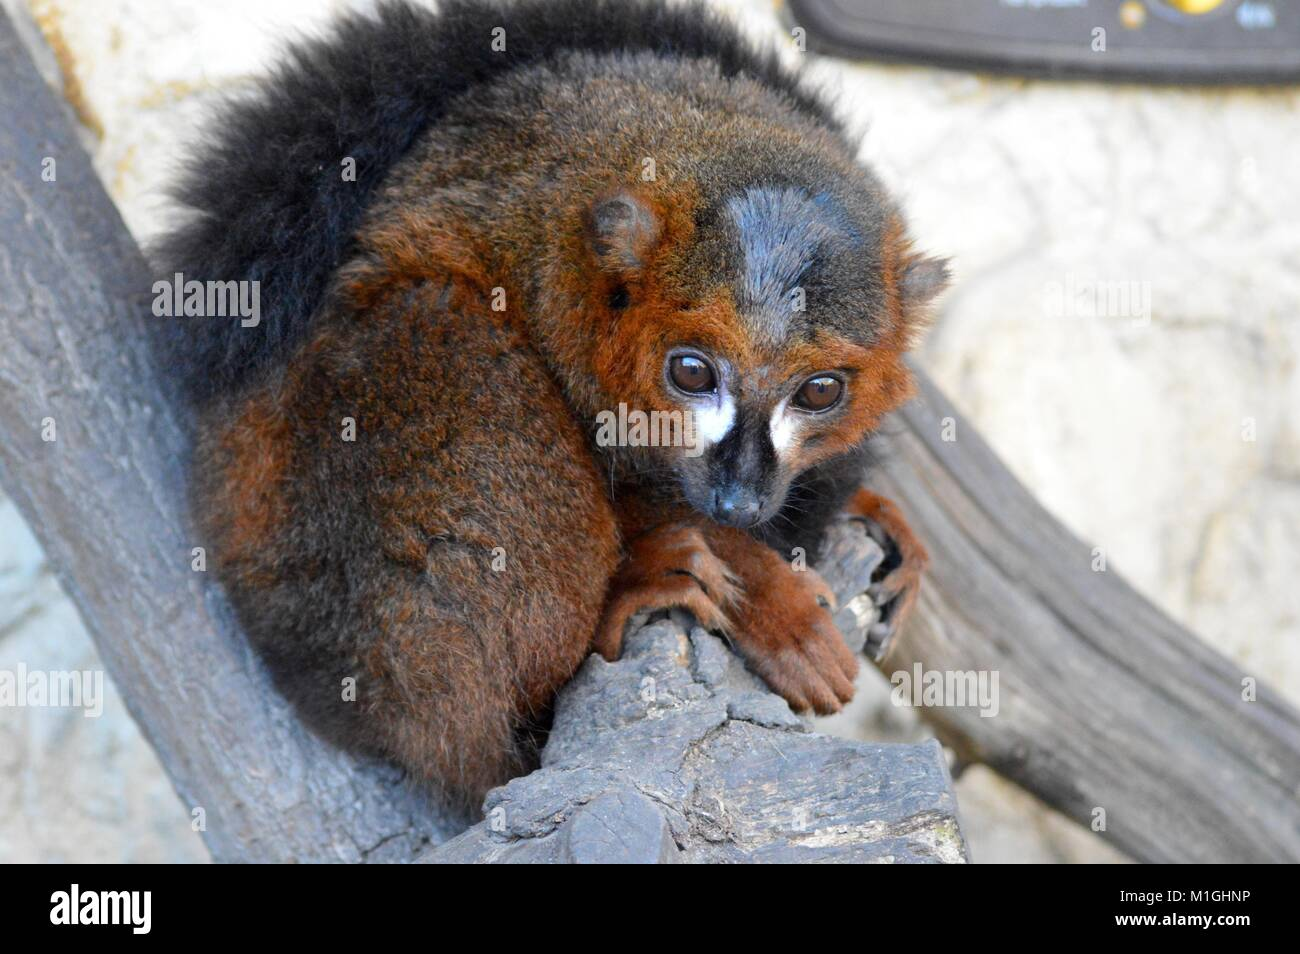 Red Bellied Lemur - Stock Image